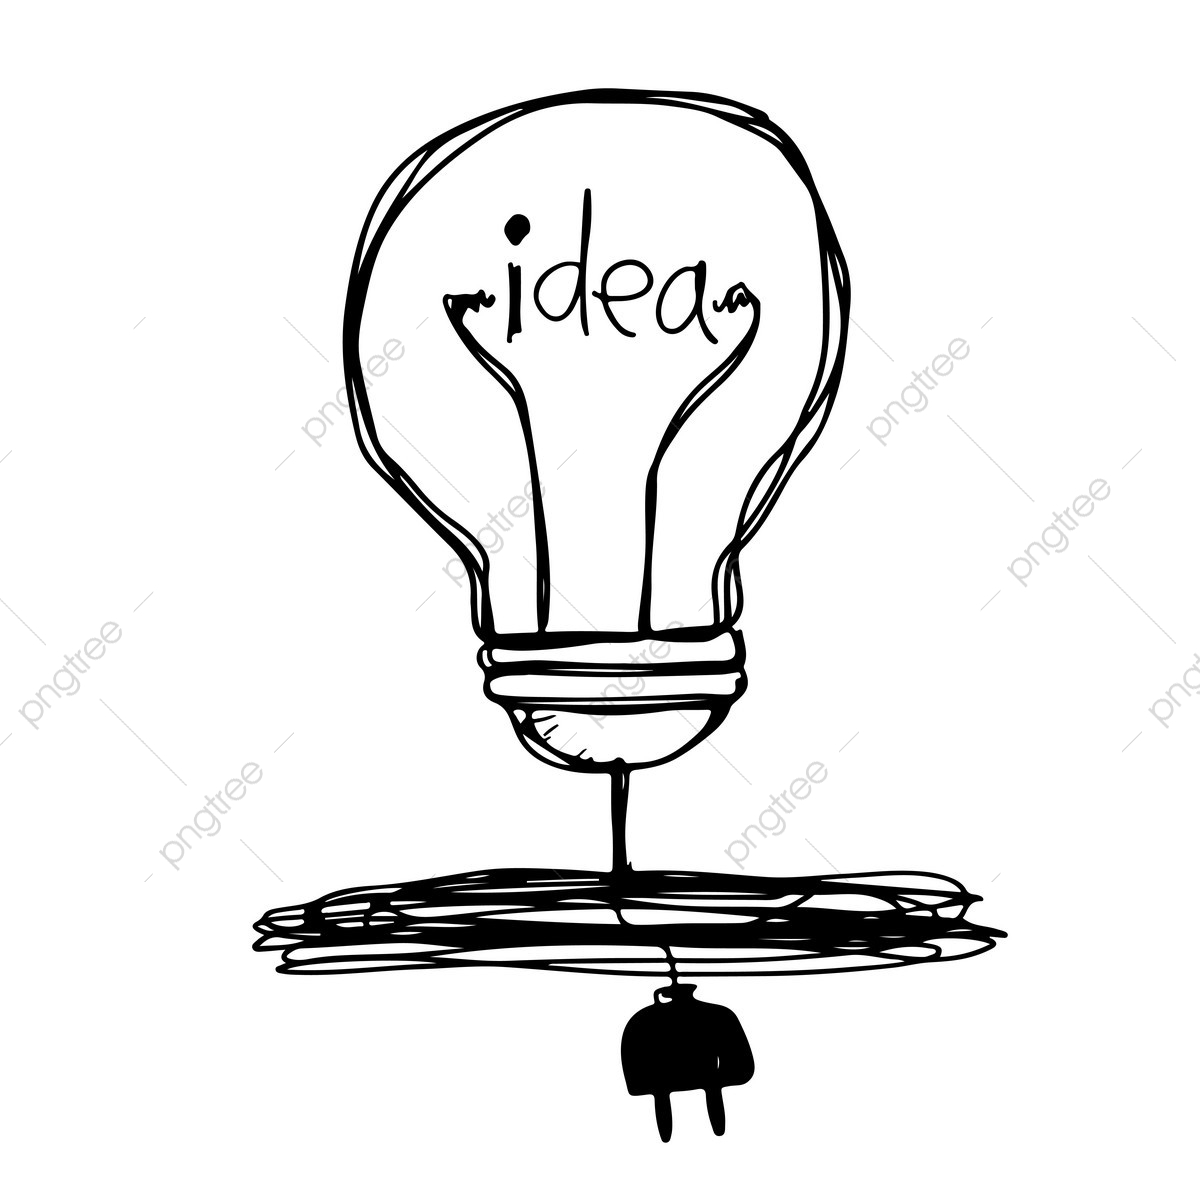 light bulb png images vector and psd files free download on pngtree https pngtree com freepng hand drawn light bulb icon 3566433 html